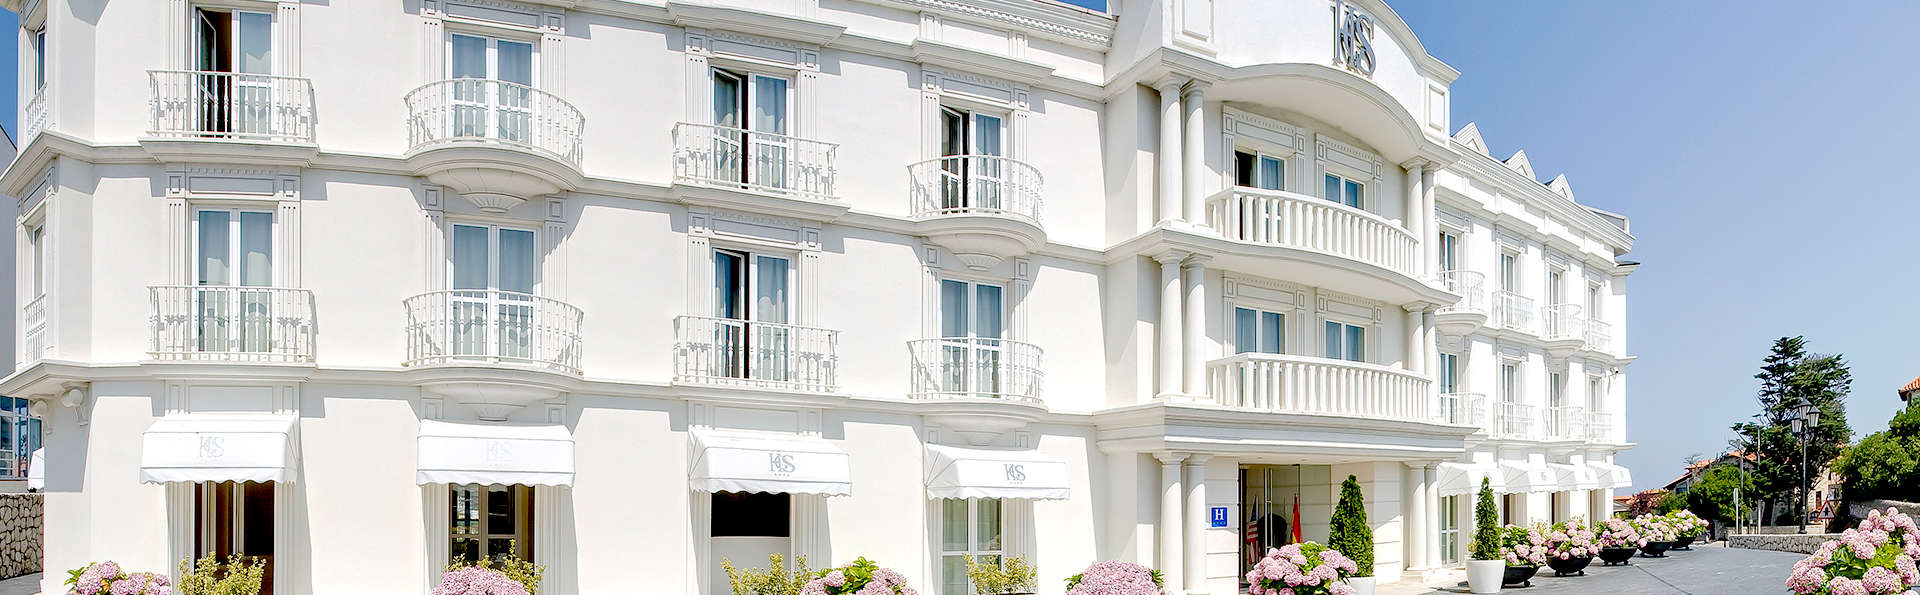 Gran Hotel Suances - Edit_Front.jpg